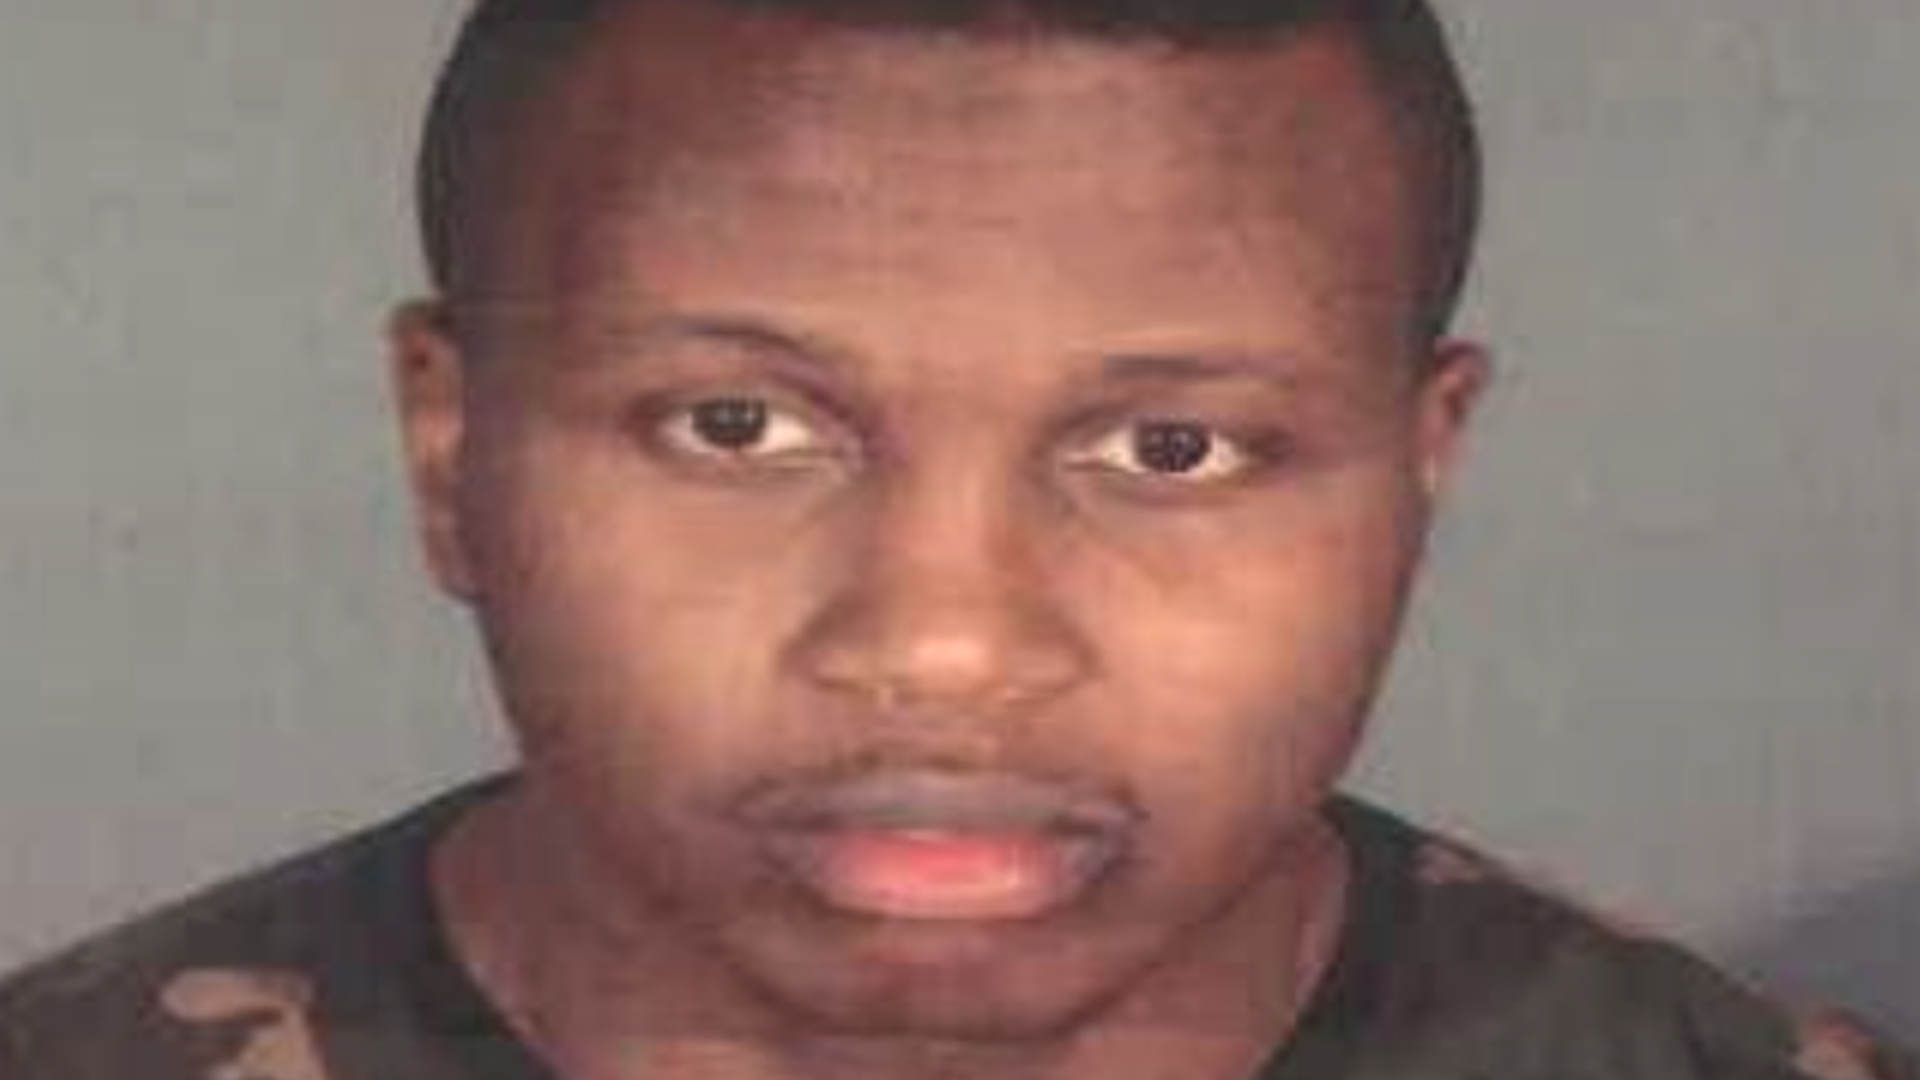 Lewis Sibomana appears in a photo released by the Los Angeles Police Department on Feb. 18, 2020.